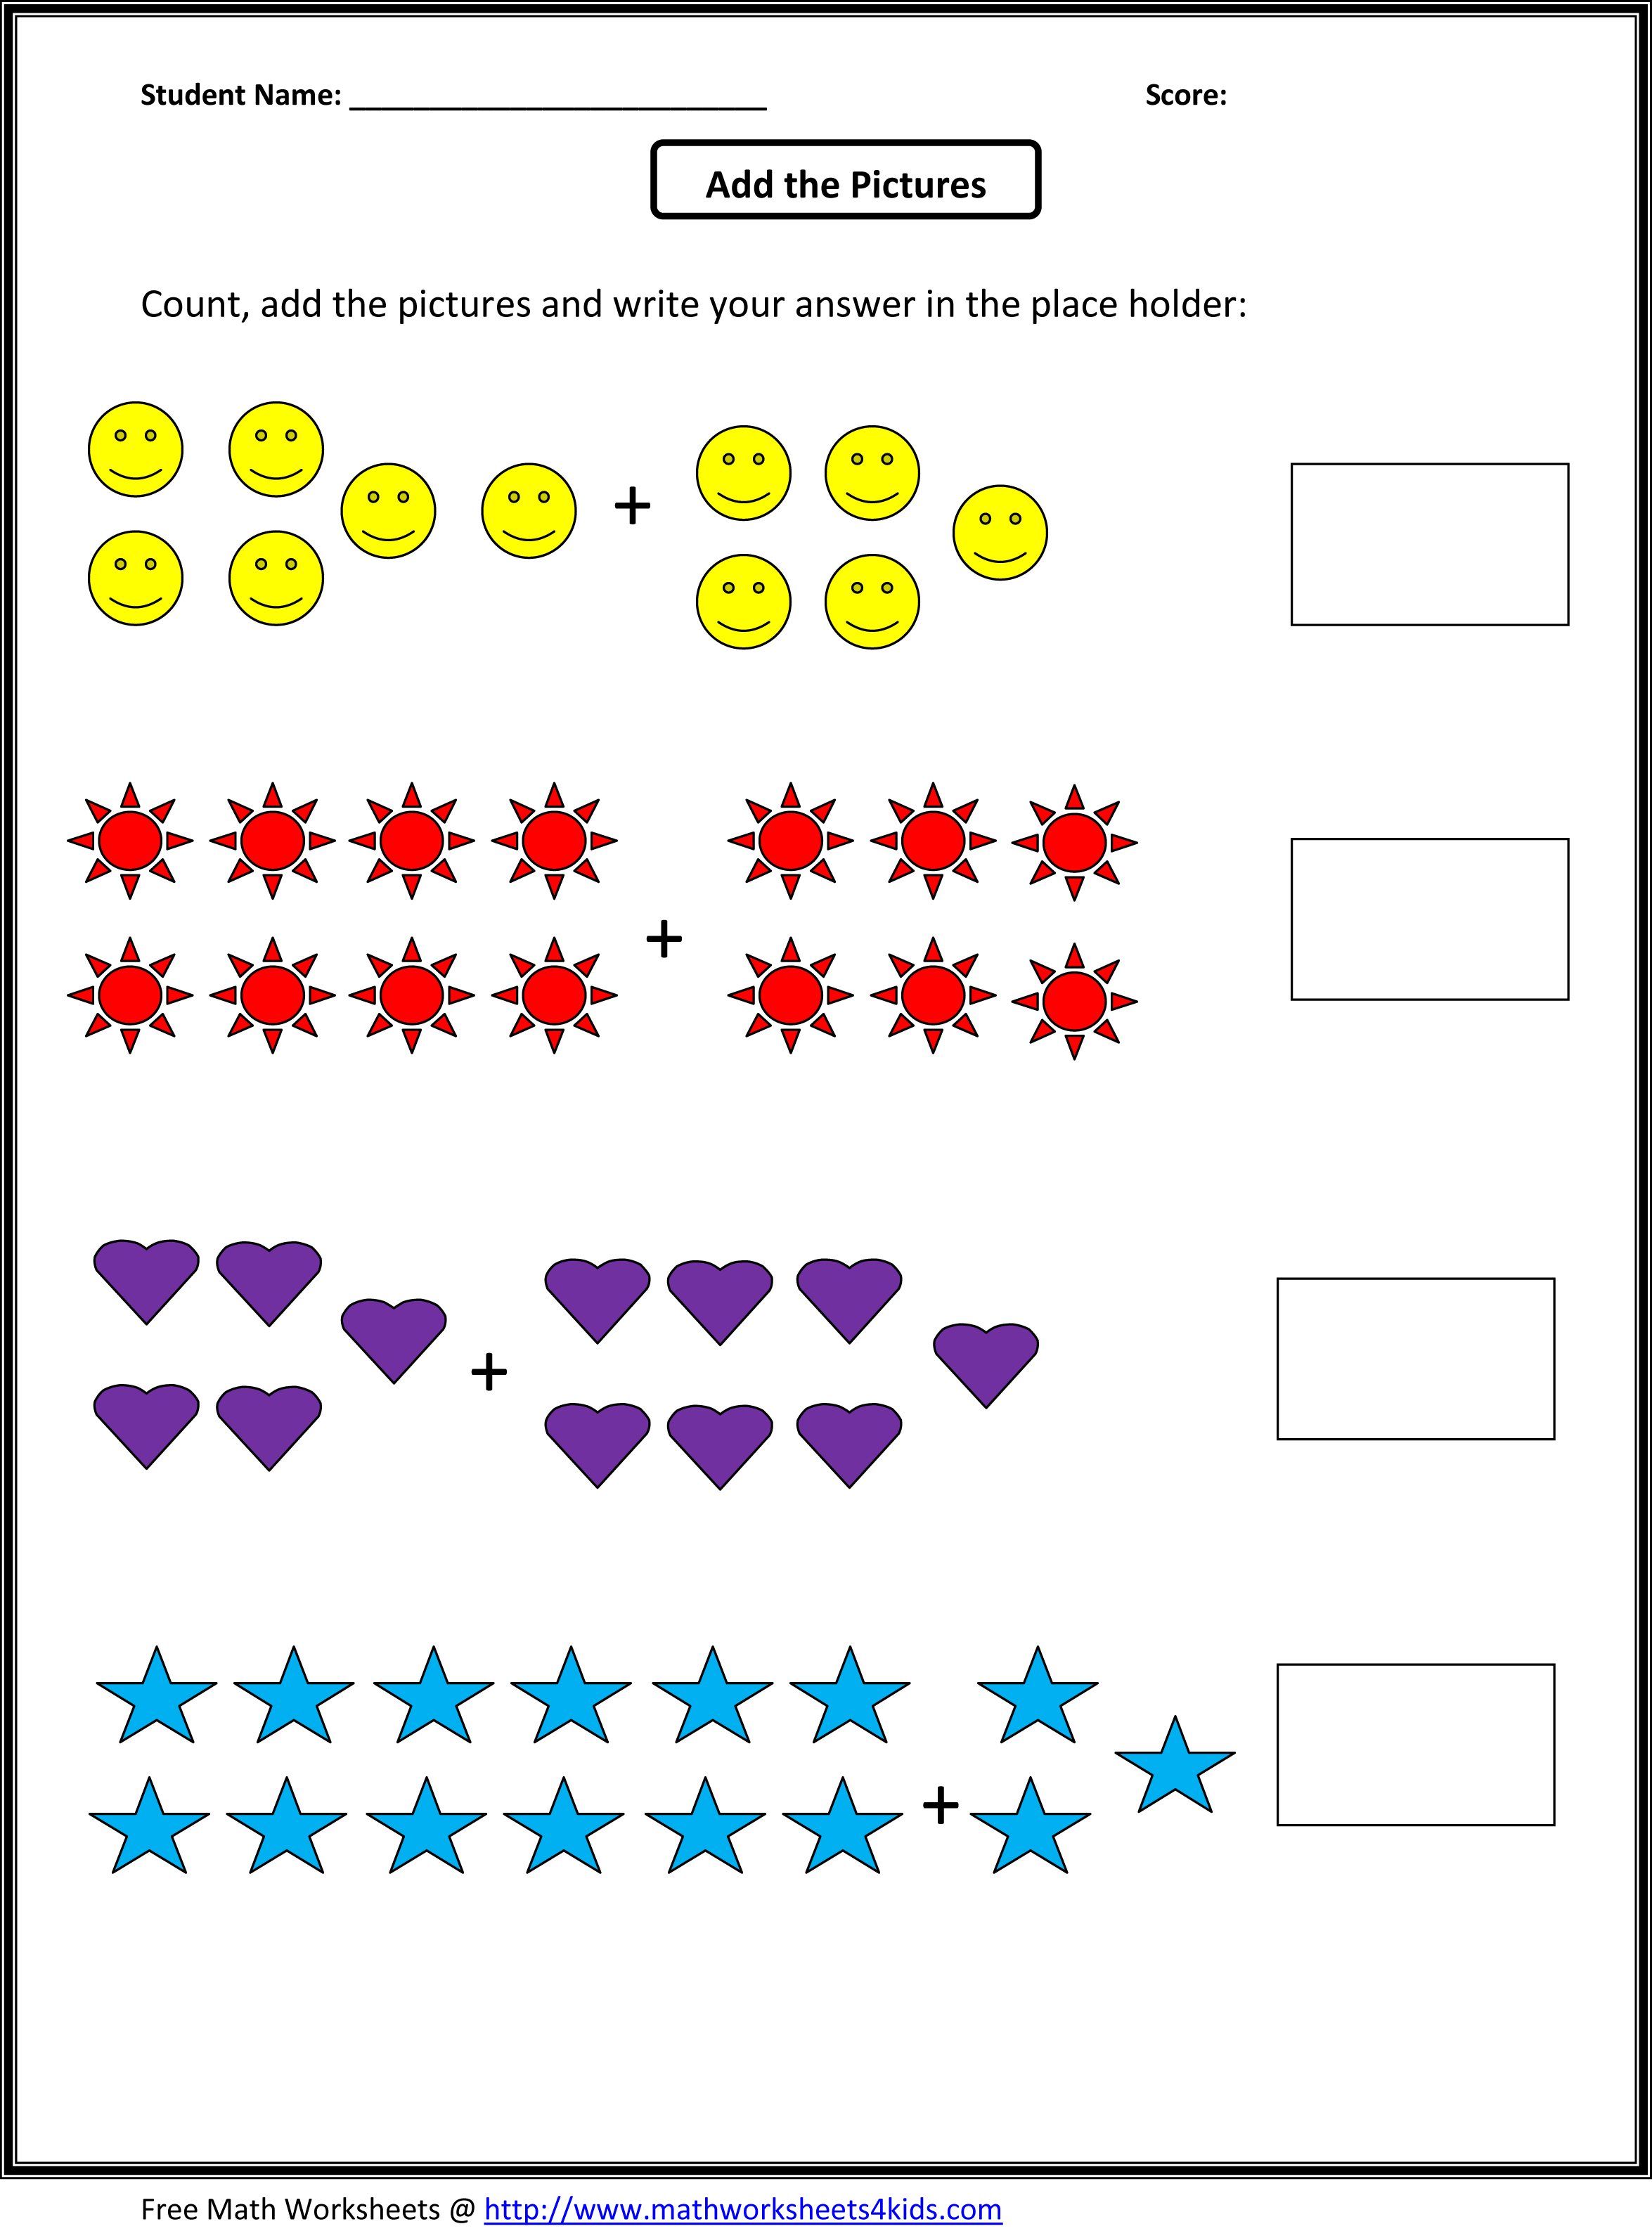 Weirdmailus  Remarkable Grade  Maths Worksheet  Reocurent With Licious Math Worksheets For St Grade Free  Reocurent With Extraordinary Sh Sound Worksheet Also Story Sequencing Worksheets Ks In Addition Adding And Subtracting Whole Numbers And Decimals Worksheets And Subtraction Of Integers Worksheets As Well As Worksheets Linear Equations Additionally Maths Worksheet For Year  From Reocurentcom With Weirdmailus  Licious Grade  Maths Worksheet  Reocurent With Extraordinary Math Worksheets For St Grade Free  Reocurent And Remarkable Sh Sound Worksheet Also Story Sequencing Worksheets Ks In Addition Adding And Subtracting Whole Numbers And Decimals Worksheets From Reocurentcom